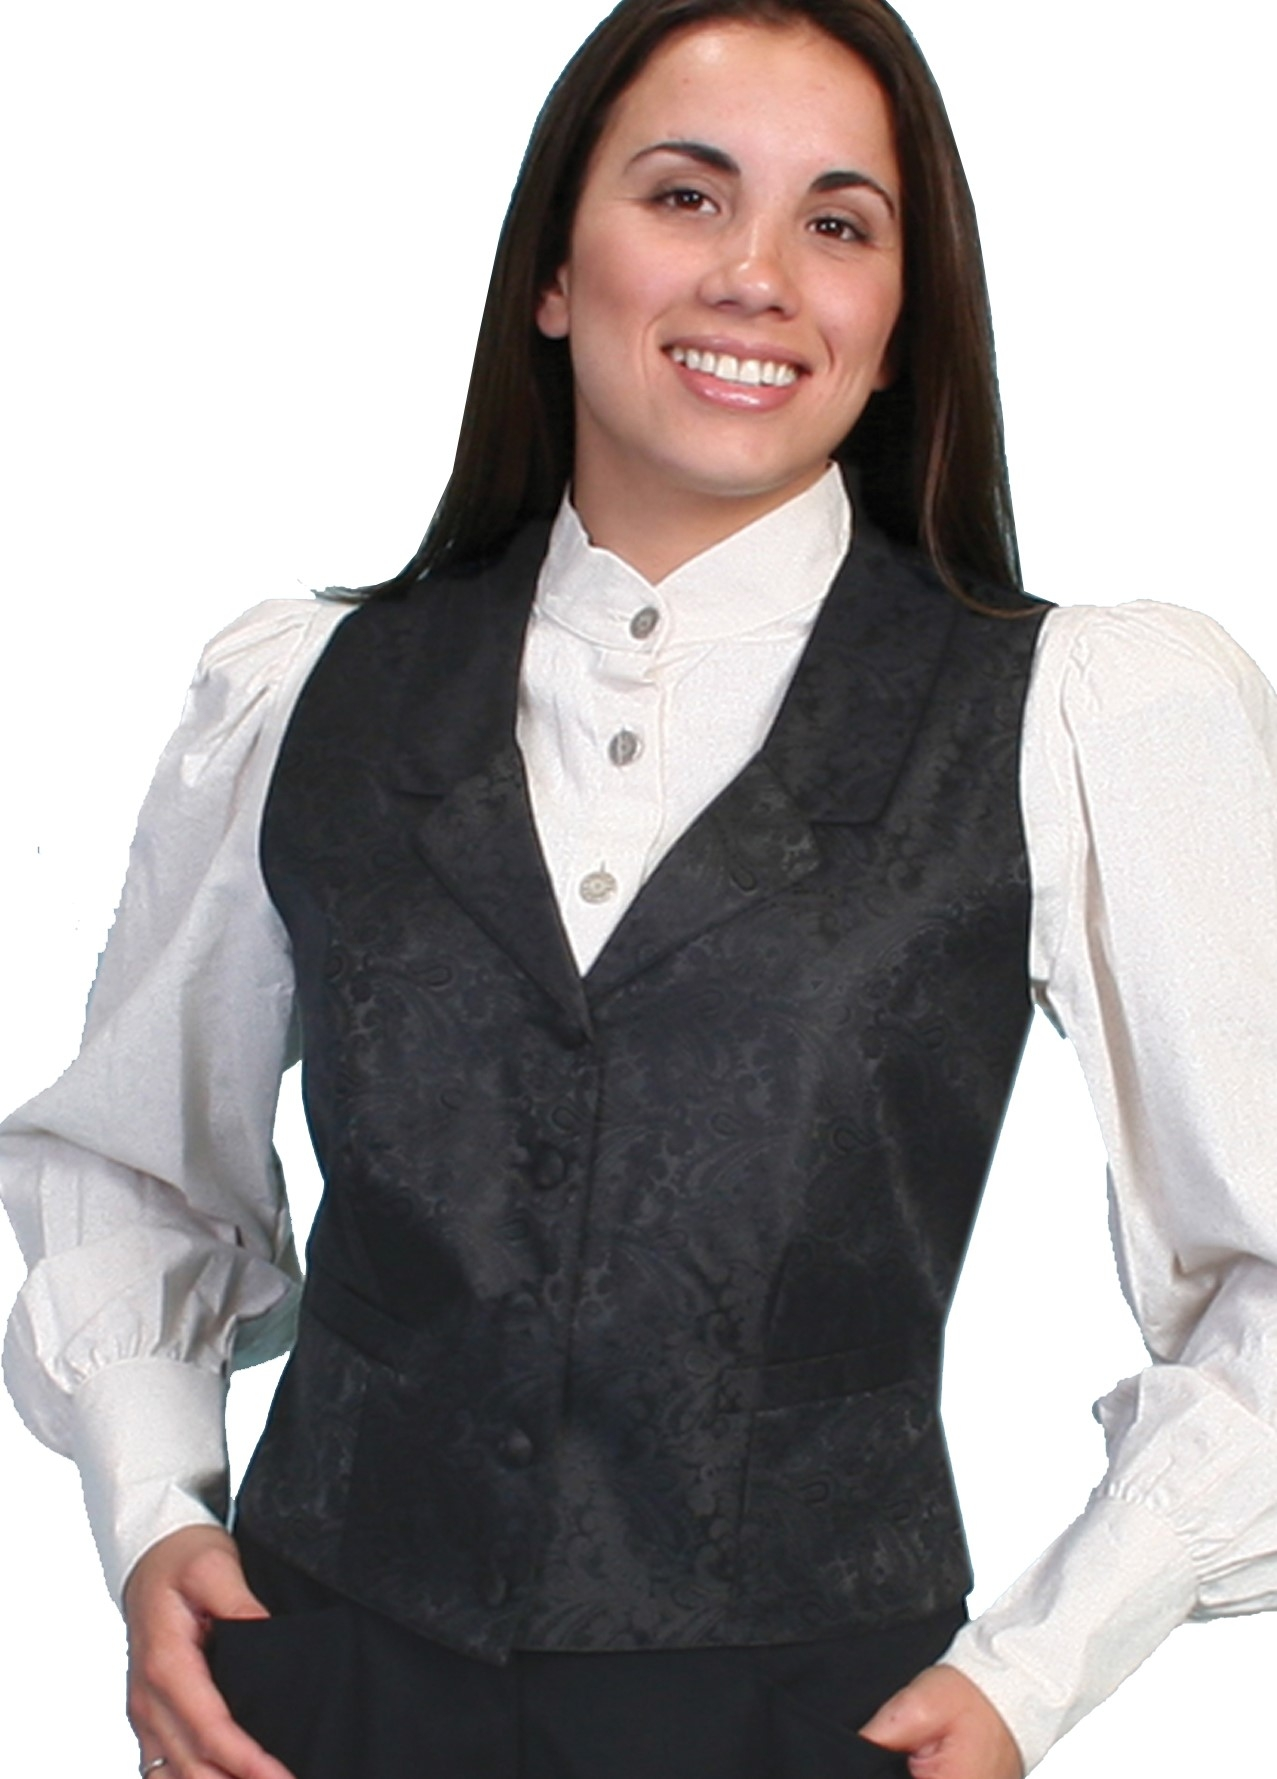 Womens Scully Black Paisley western vest, Womens Victorian vest, scully western vest, scully vest, 1800's womens vest, womens 1800's western vest, 1800's vest for women